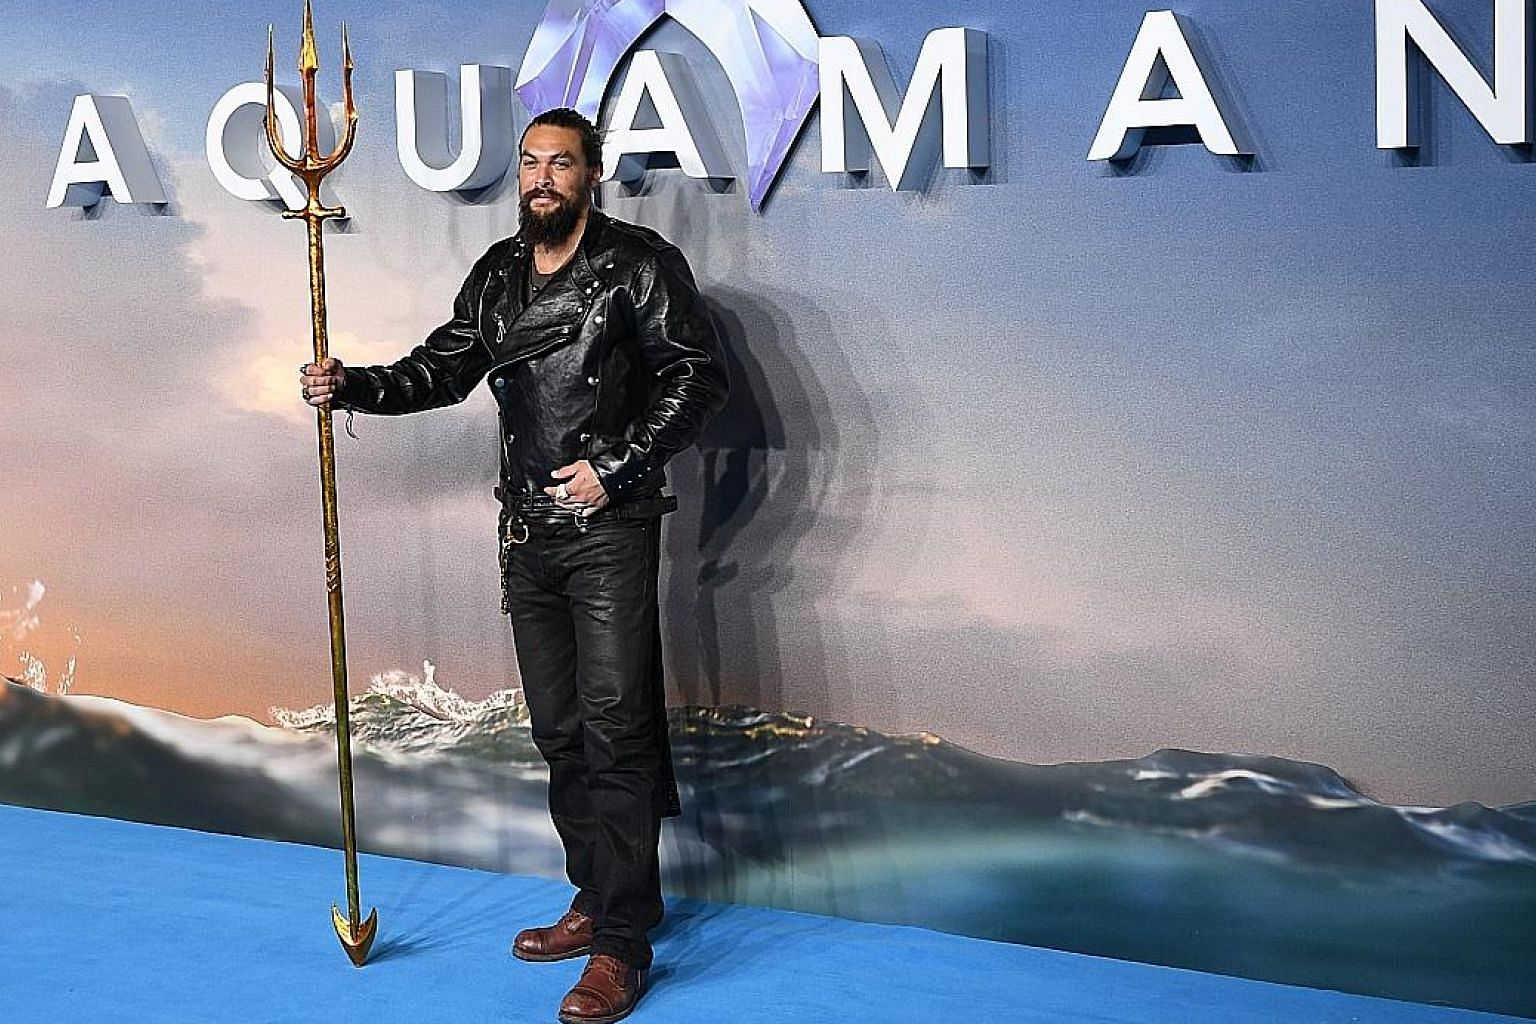 Actor Jason Momoa, who stars in Aquaman, attended the film's world premiere in London last month.